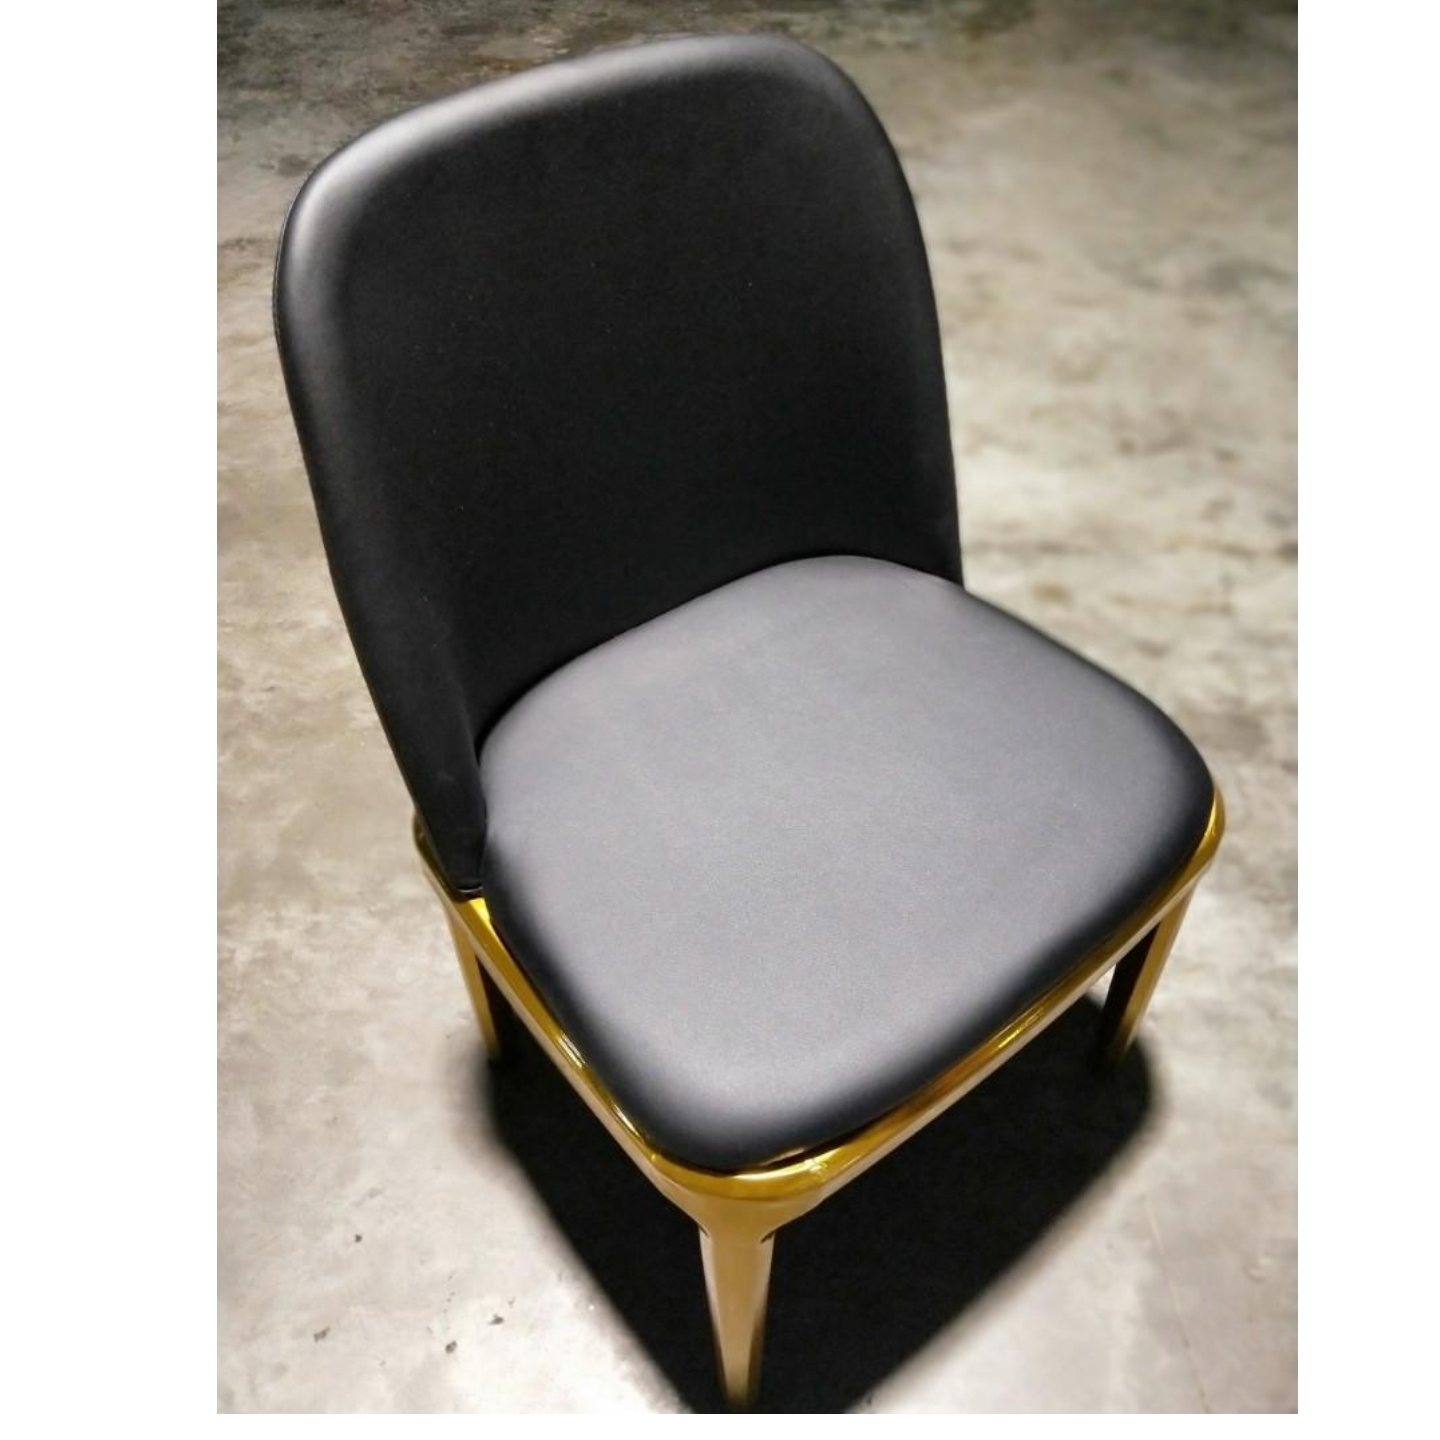 CHADSTONE Black Modern PU Leather Dining Chair with GOLD FRAME